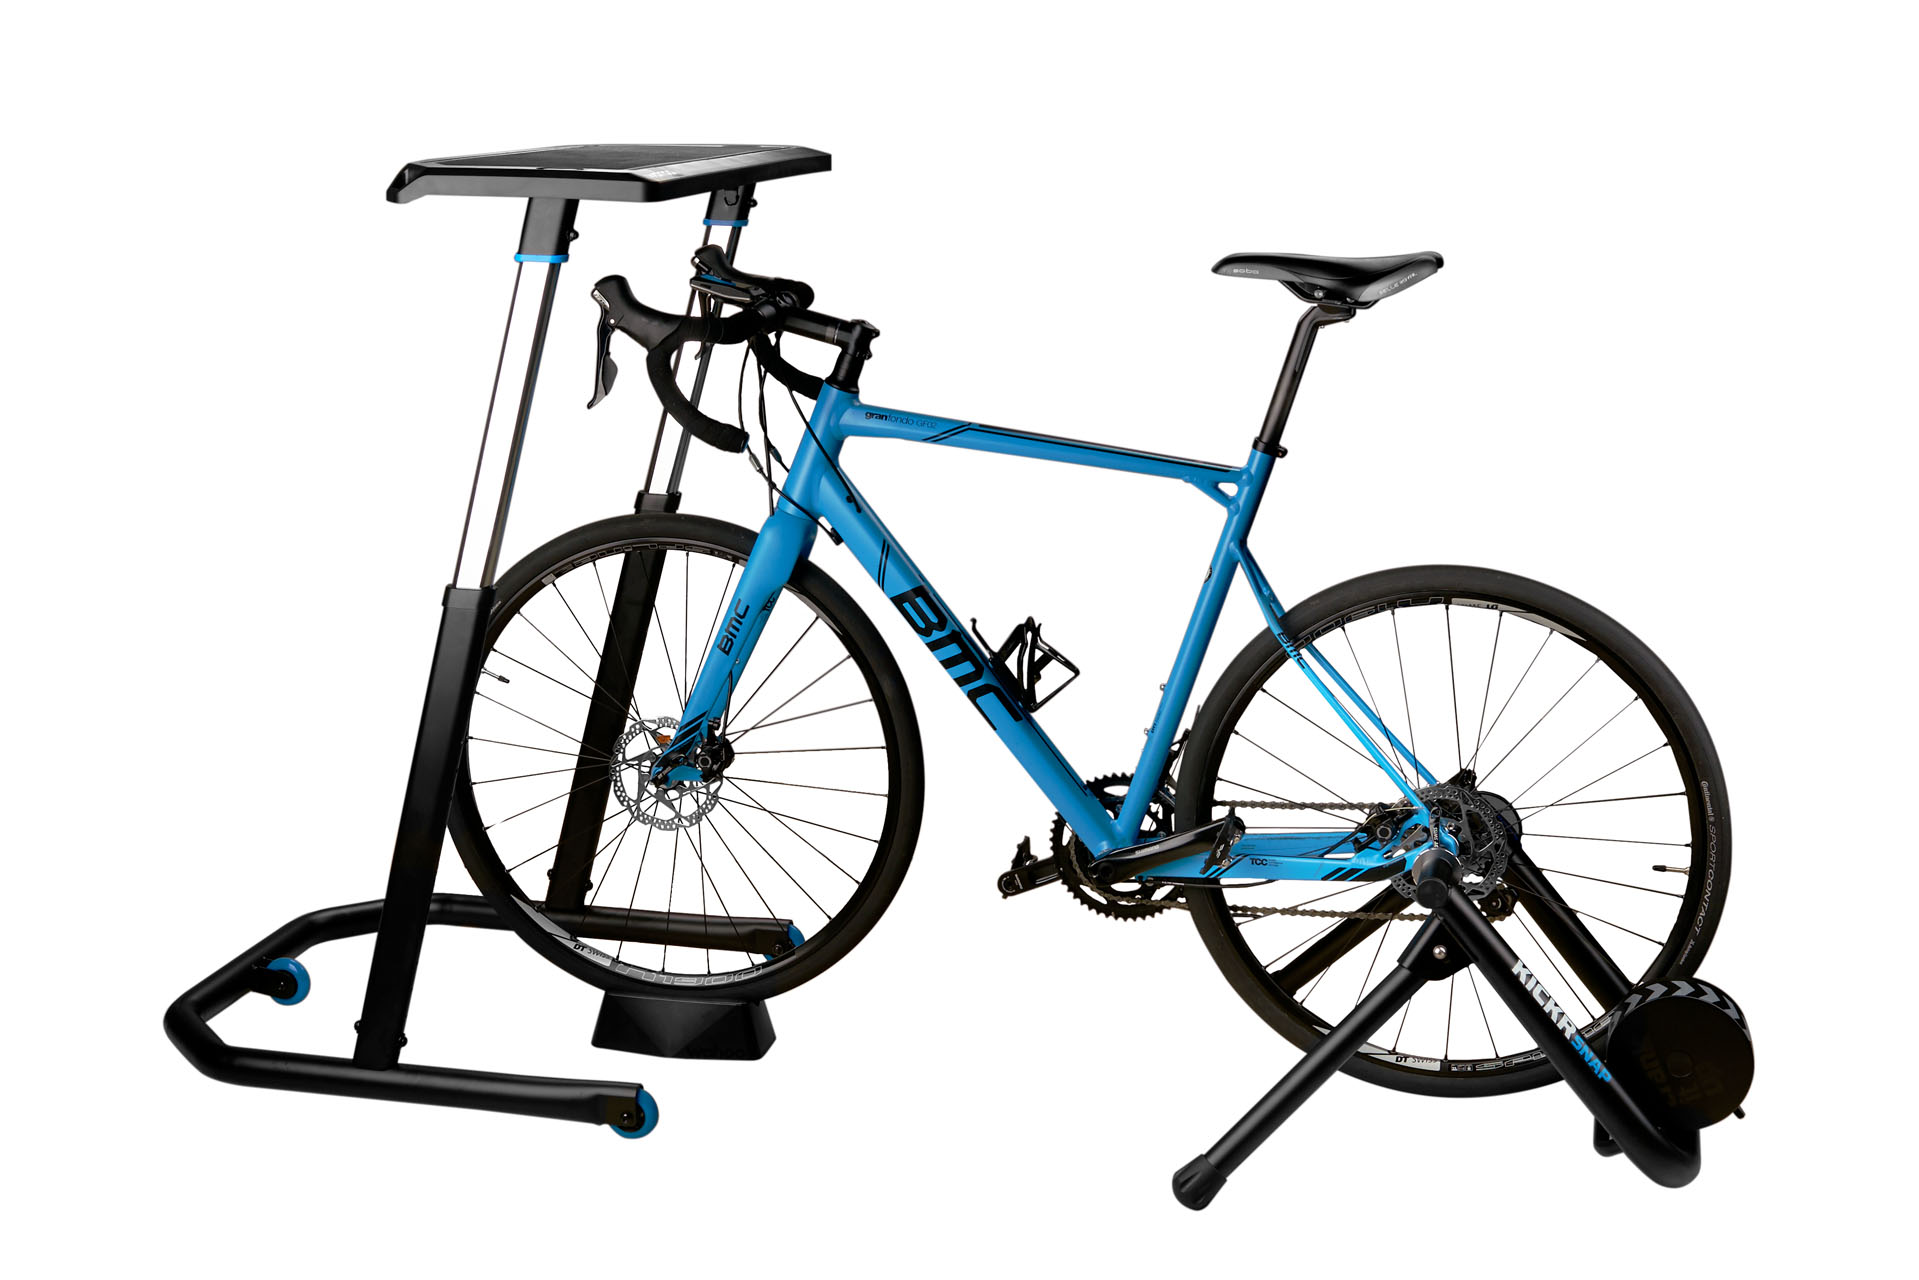 KICKR Indoor Cycling Desk-Picture-10